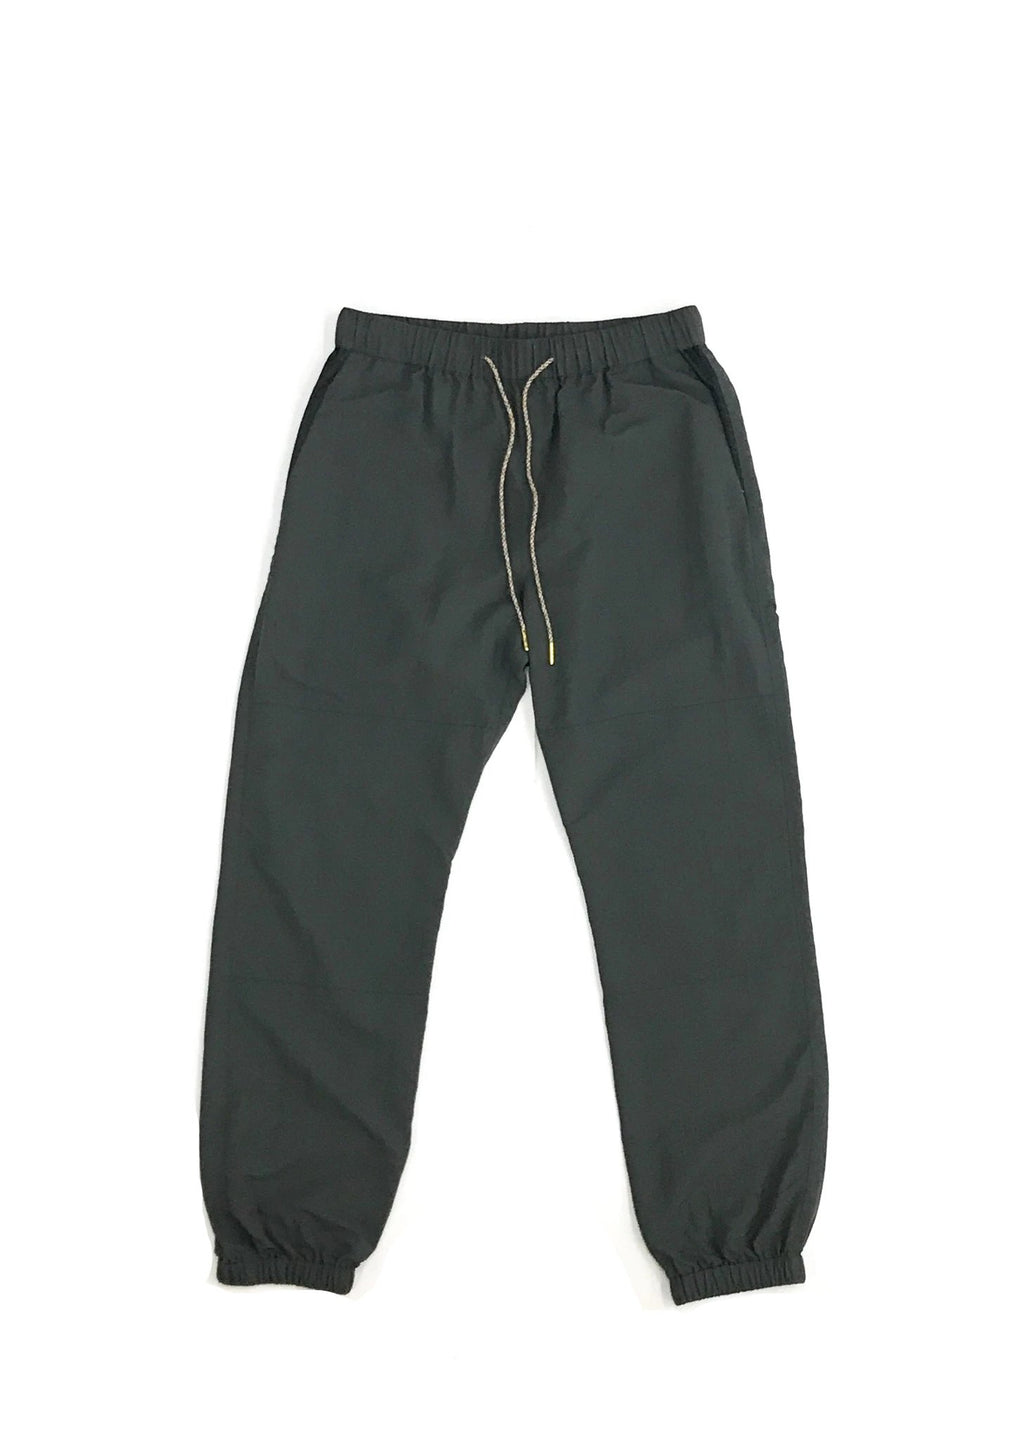 GREI new york (グレイ) / TRACK PANTS 4-PLY DWR FINISH CHARCOAL。正面画像。